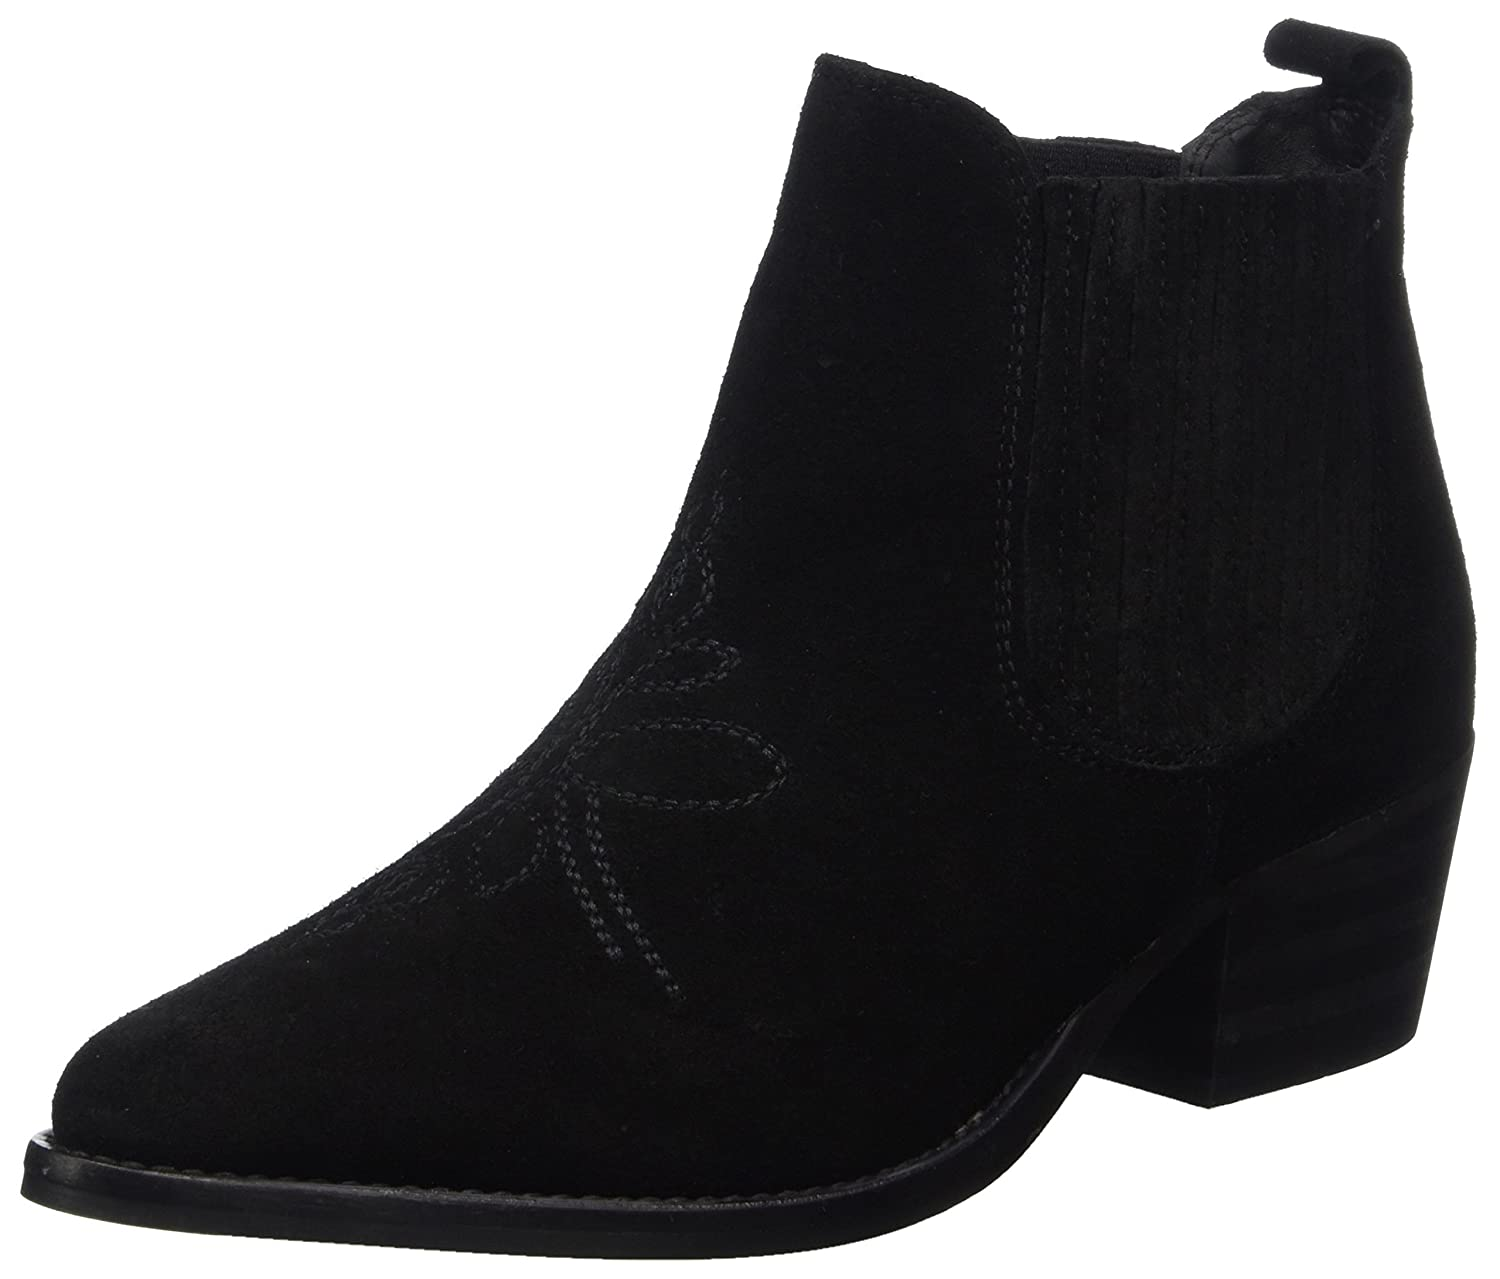 Shoe The Bear Leila S, Botas para Mujer Negro (110 Black)